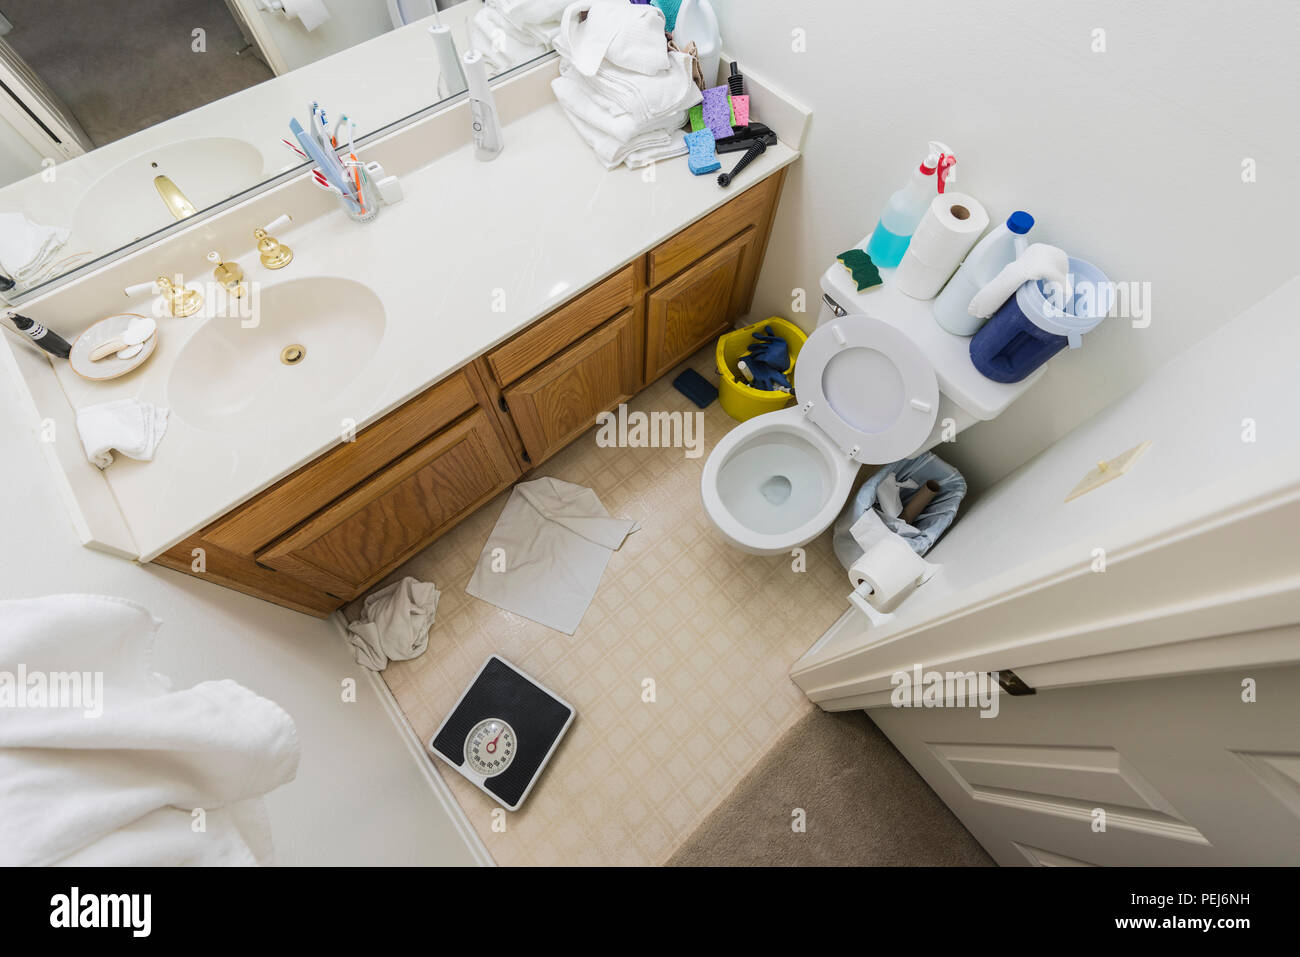 Messy little half bathroom with dirty towels and cleaning clutter. - Stock Image